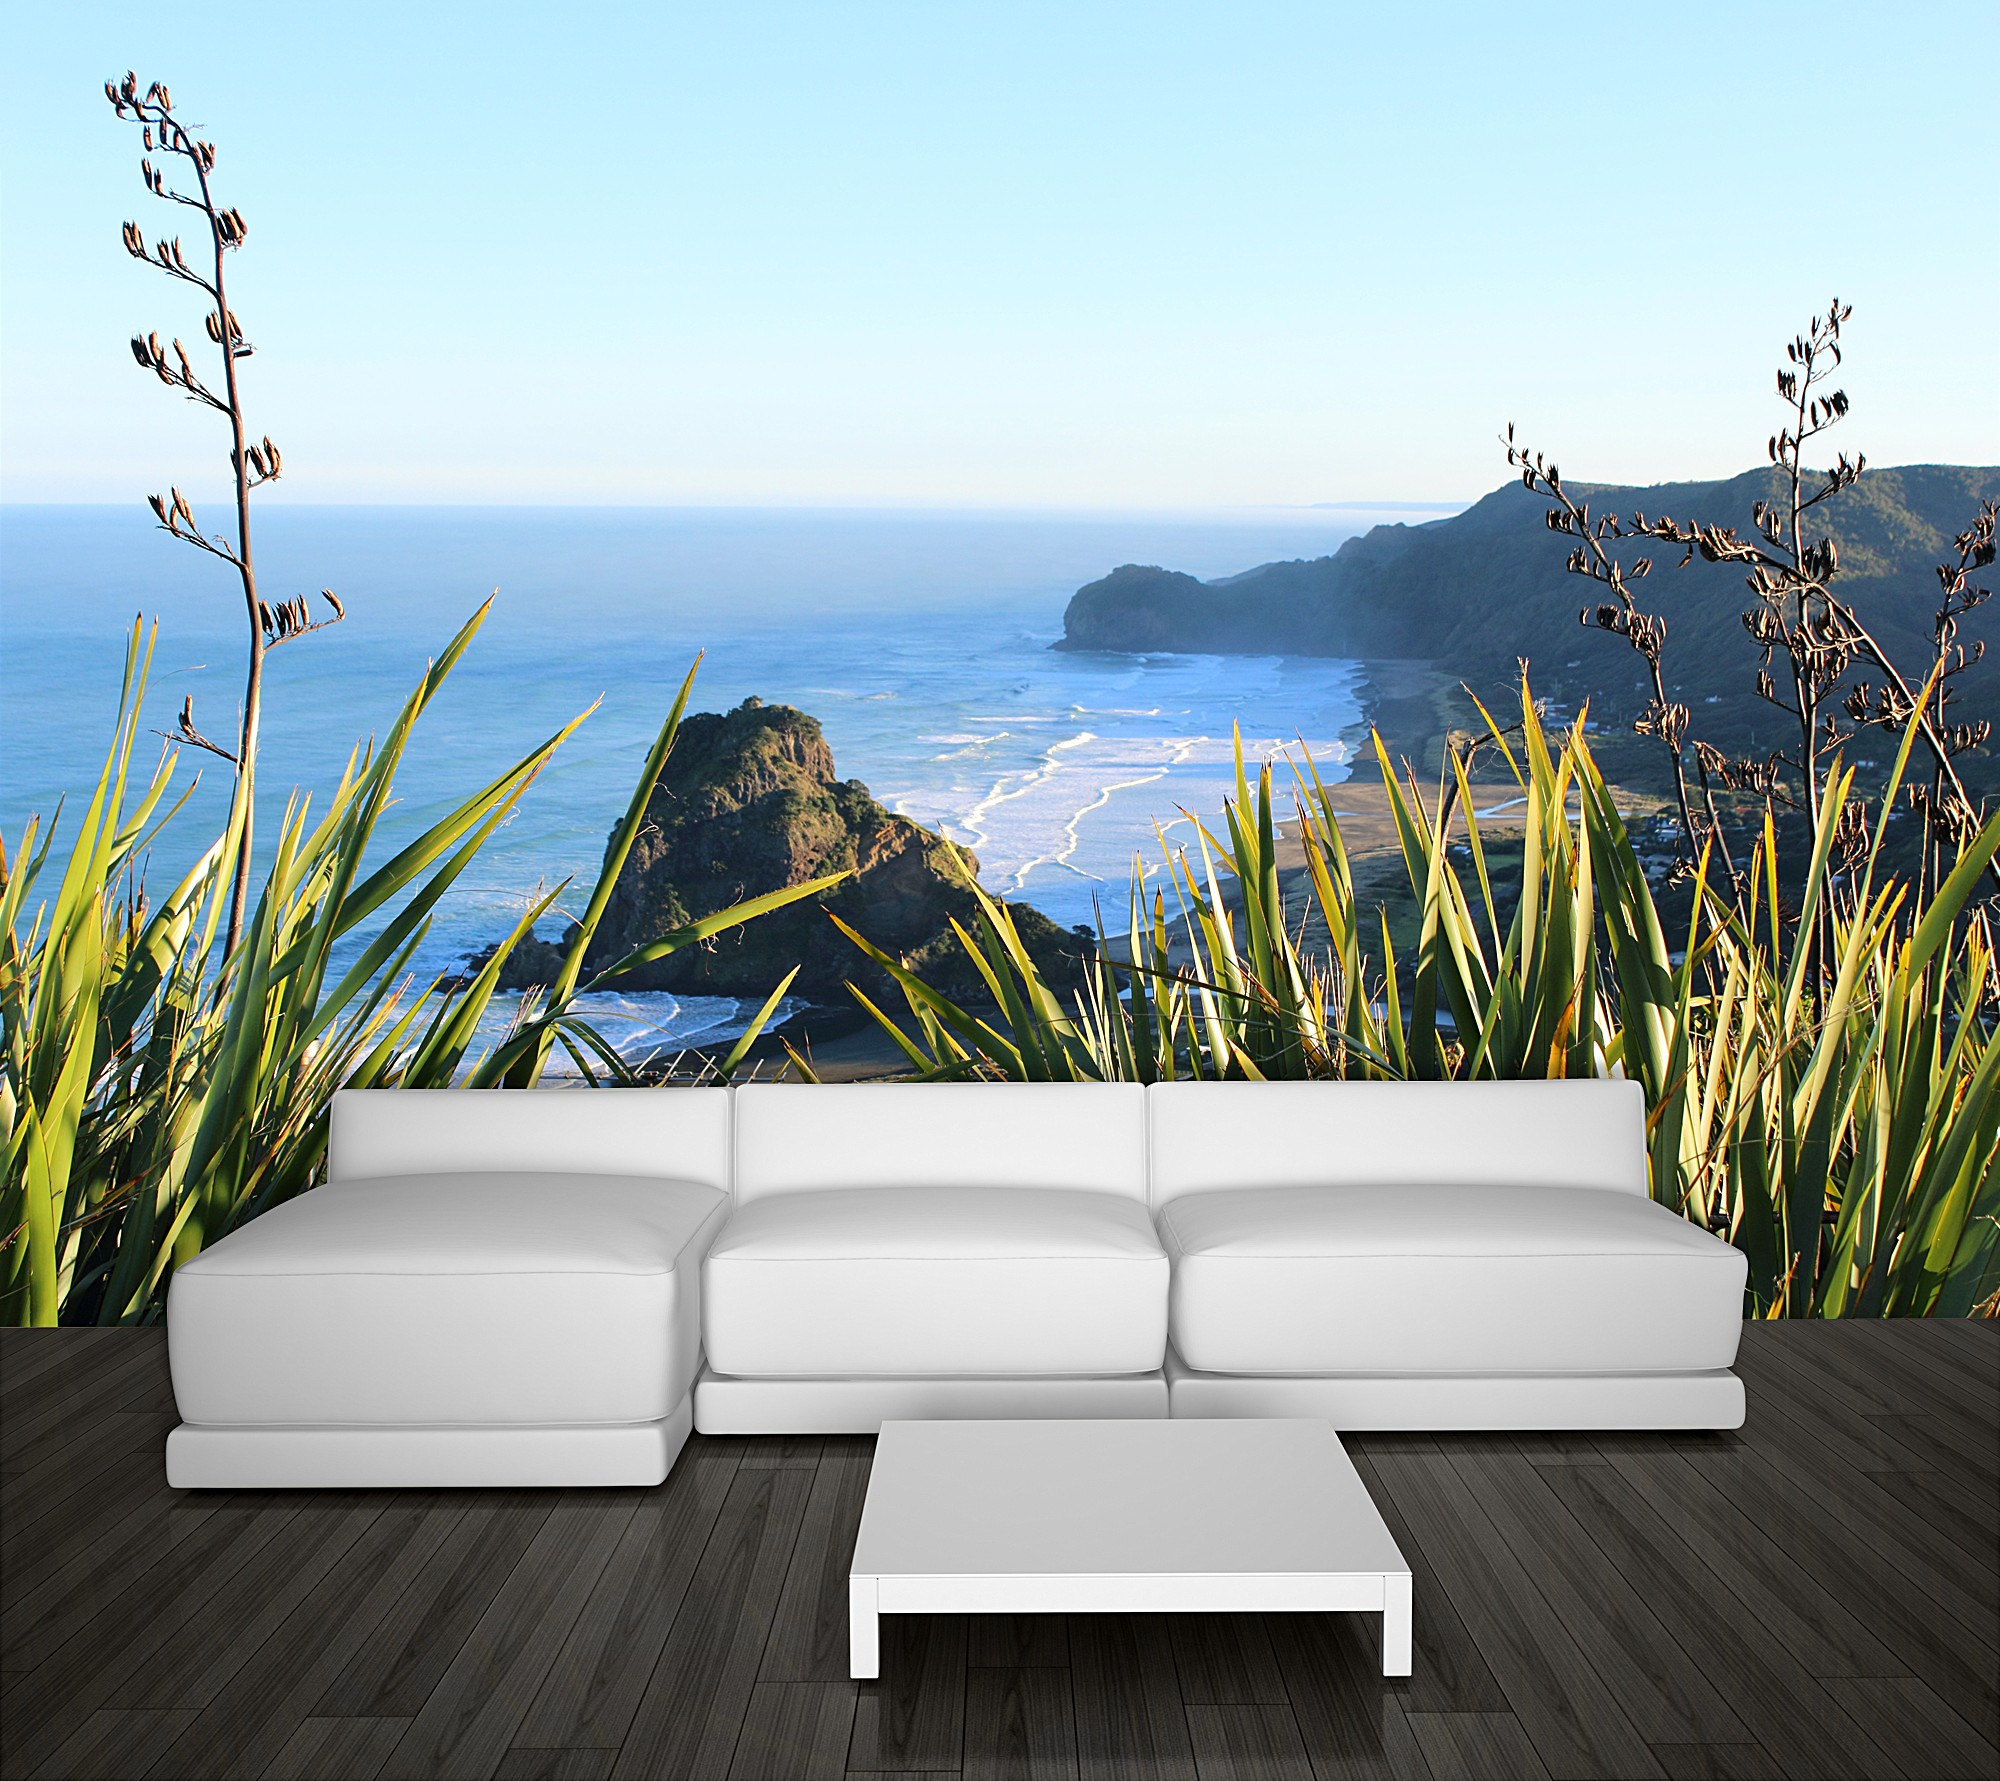 Wall Mural Printing Services New Wall Murals u2013 Your Decal Shop Nz Designer Wall Art Decals & Wall Mural Printing Services New Wall Murals u2013 Your Decal Shop Nz ...